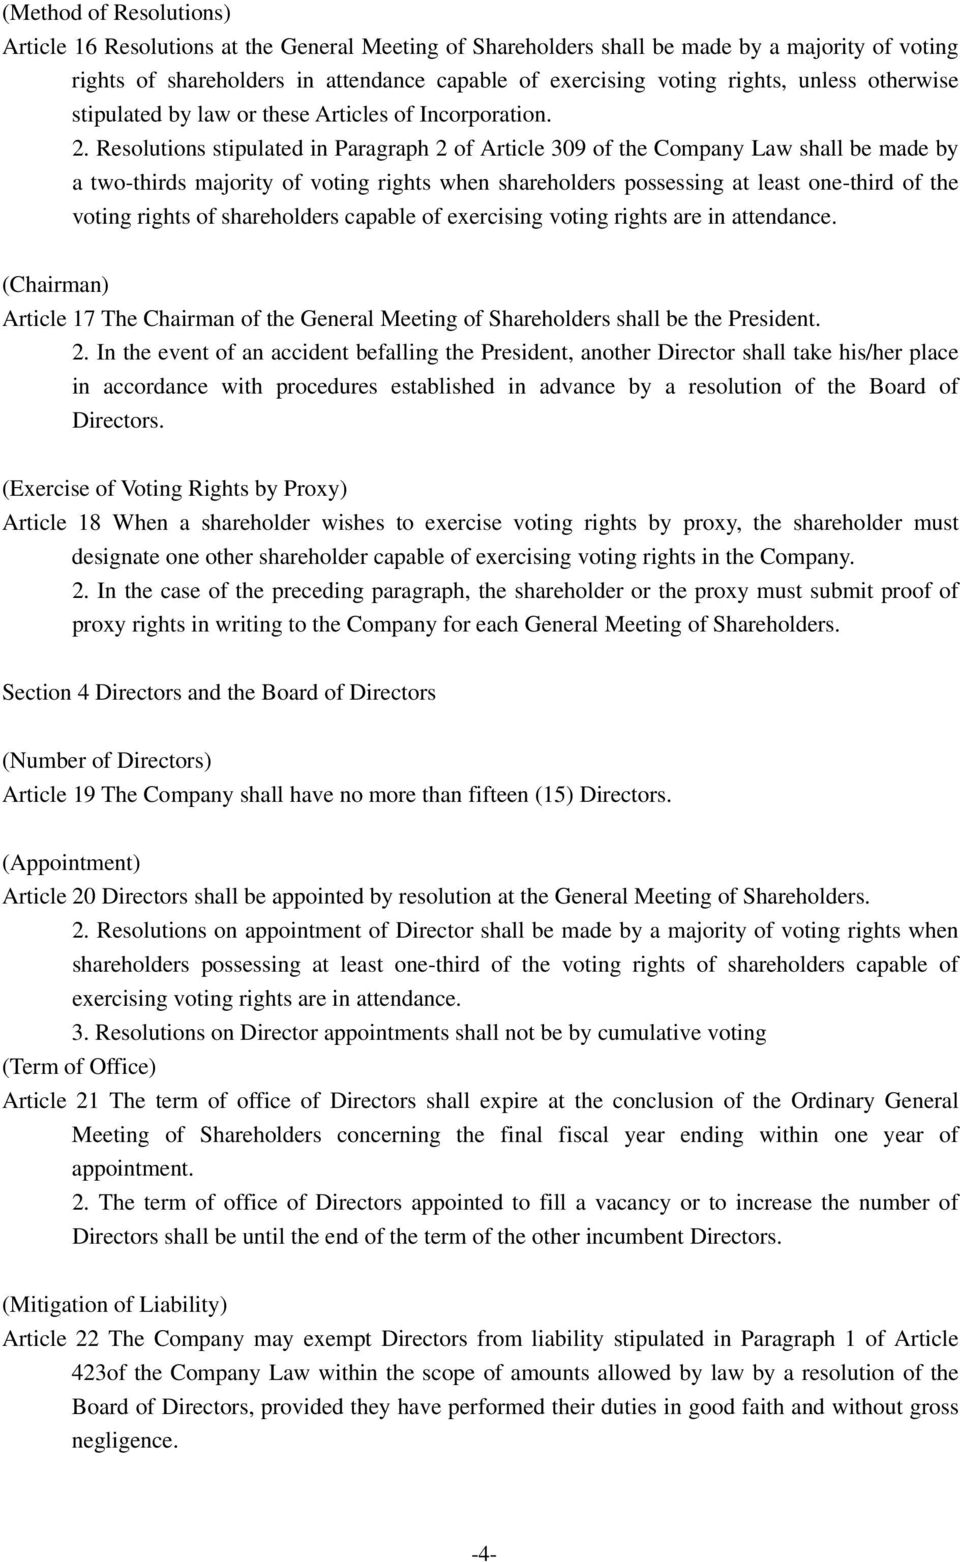 Resolutions stipulated in Paragraph 2 of Article 309 of the Company Law shall be made by a two-thirds majority of voting rights when shareholders possessing at least one-third of the voting rights of